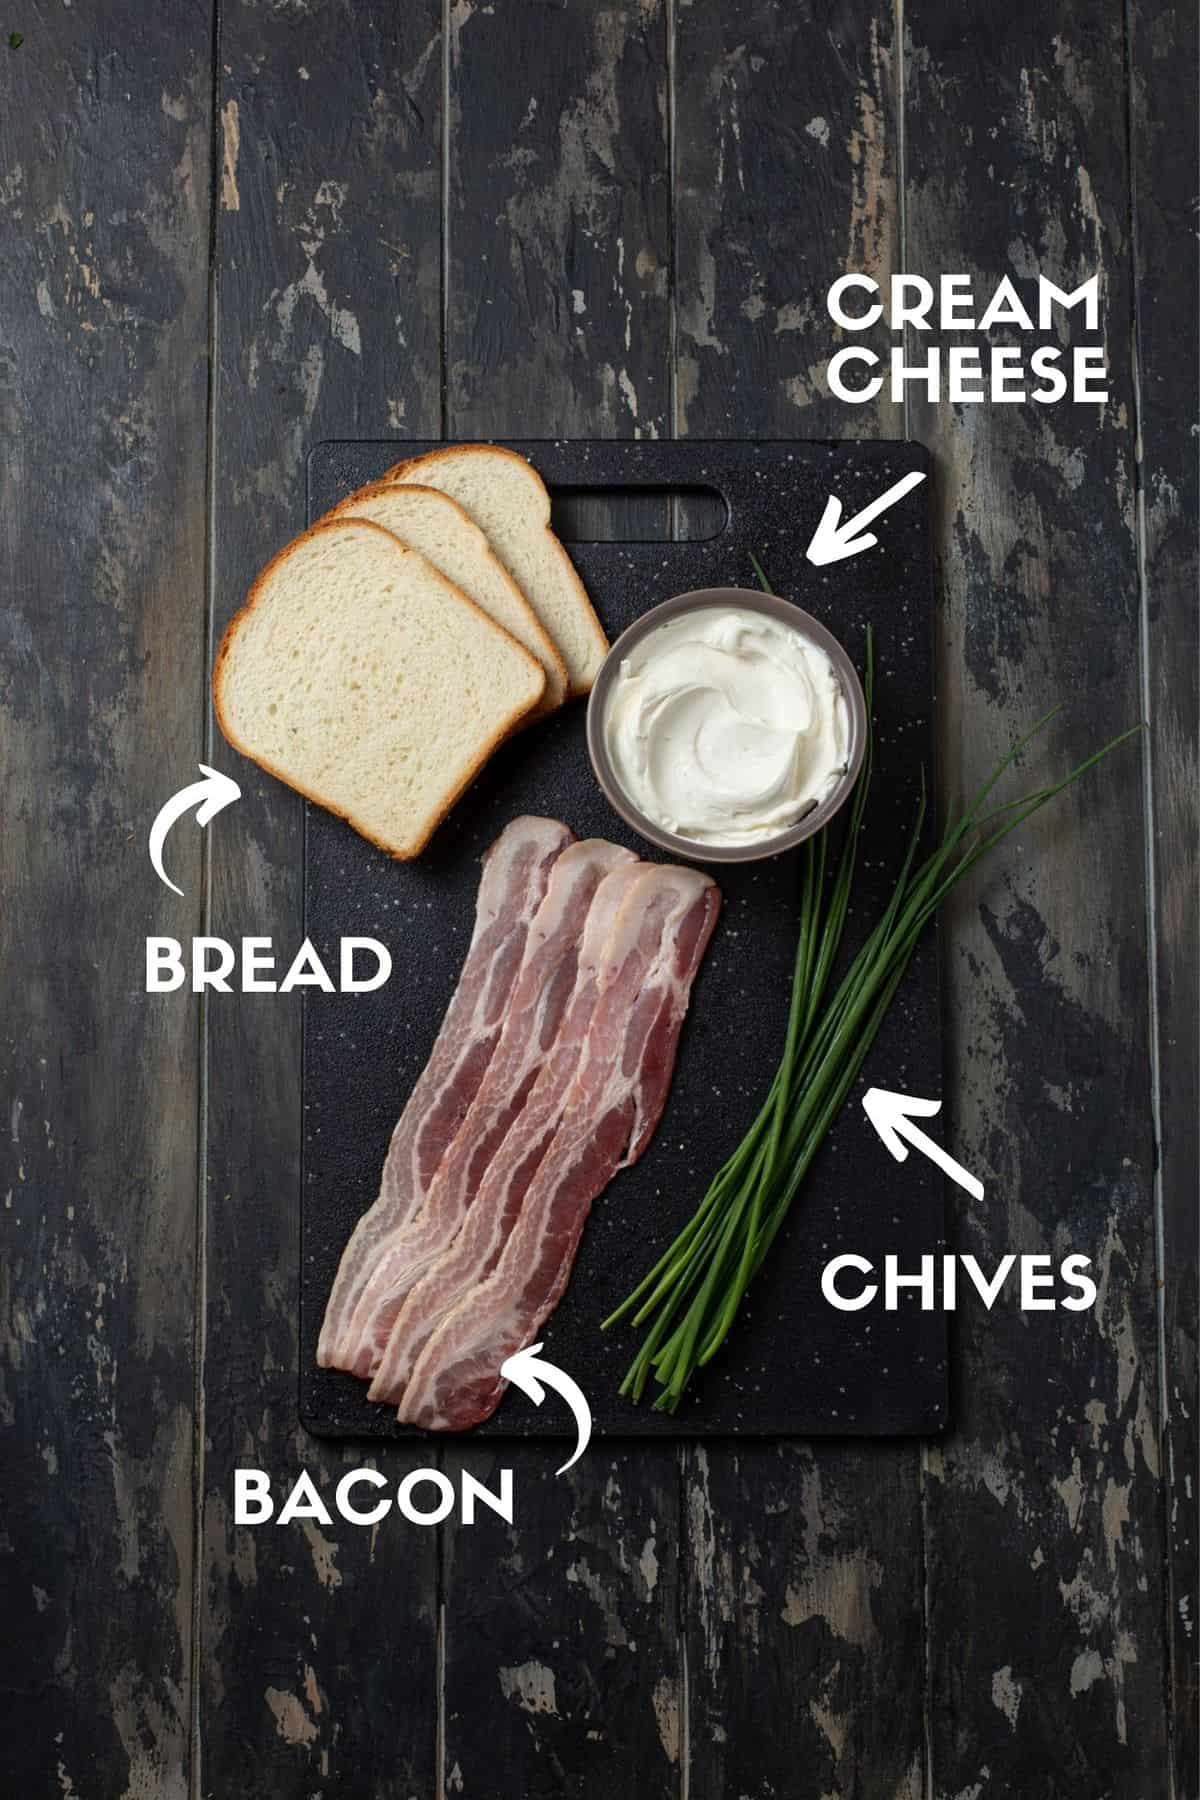 Bacon, chives, cream cheese and bread on a black board.